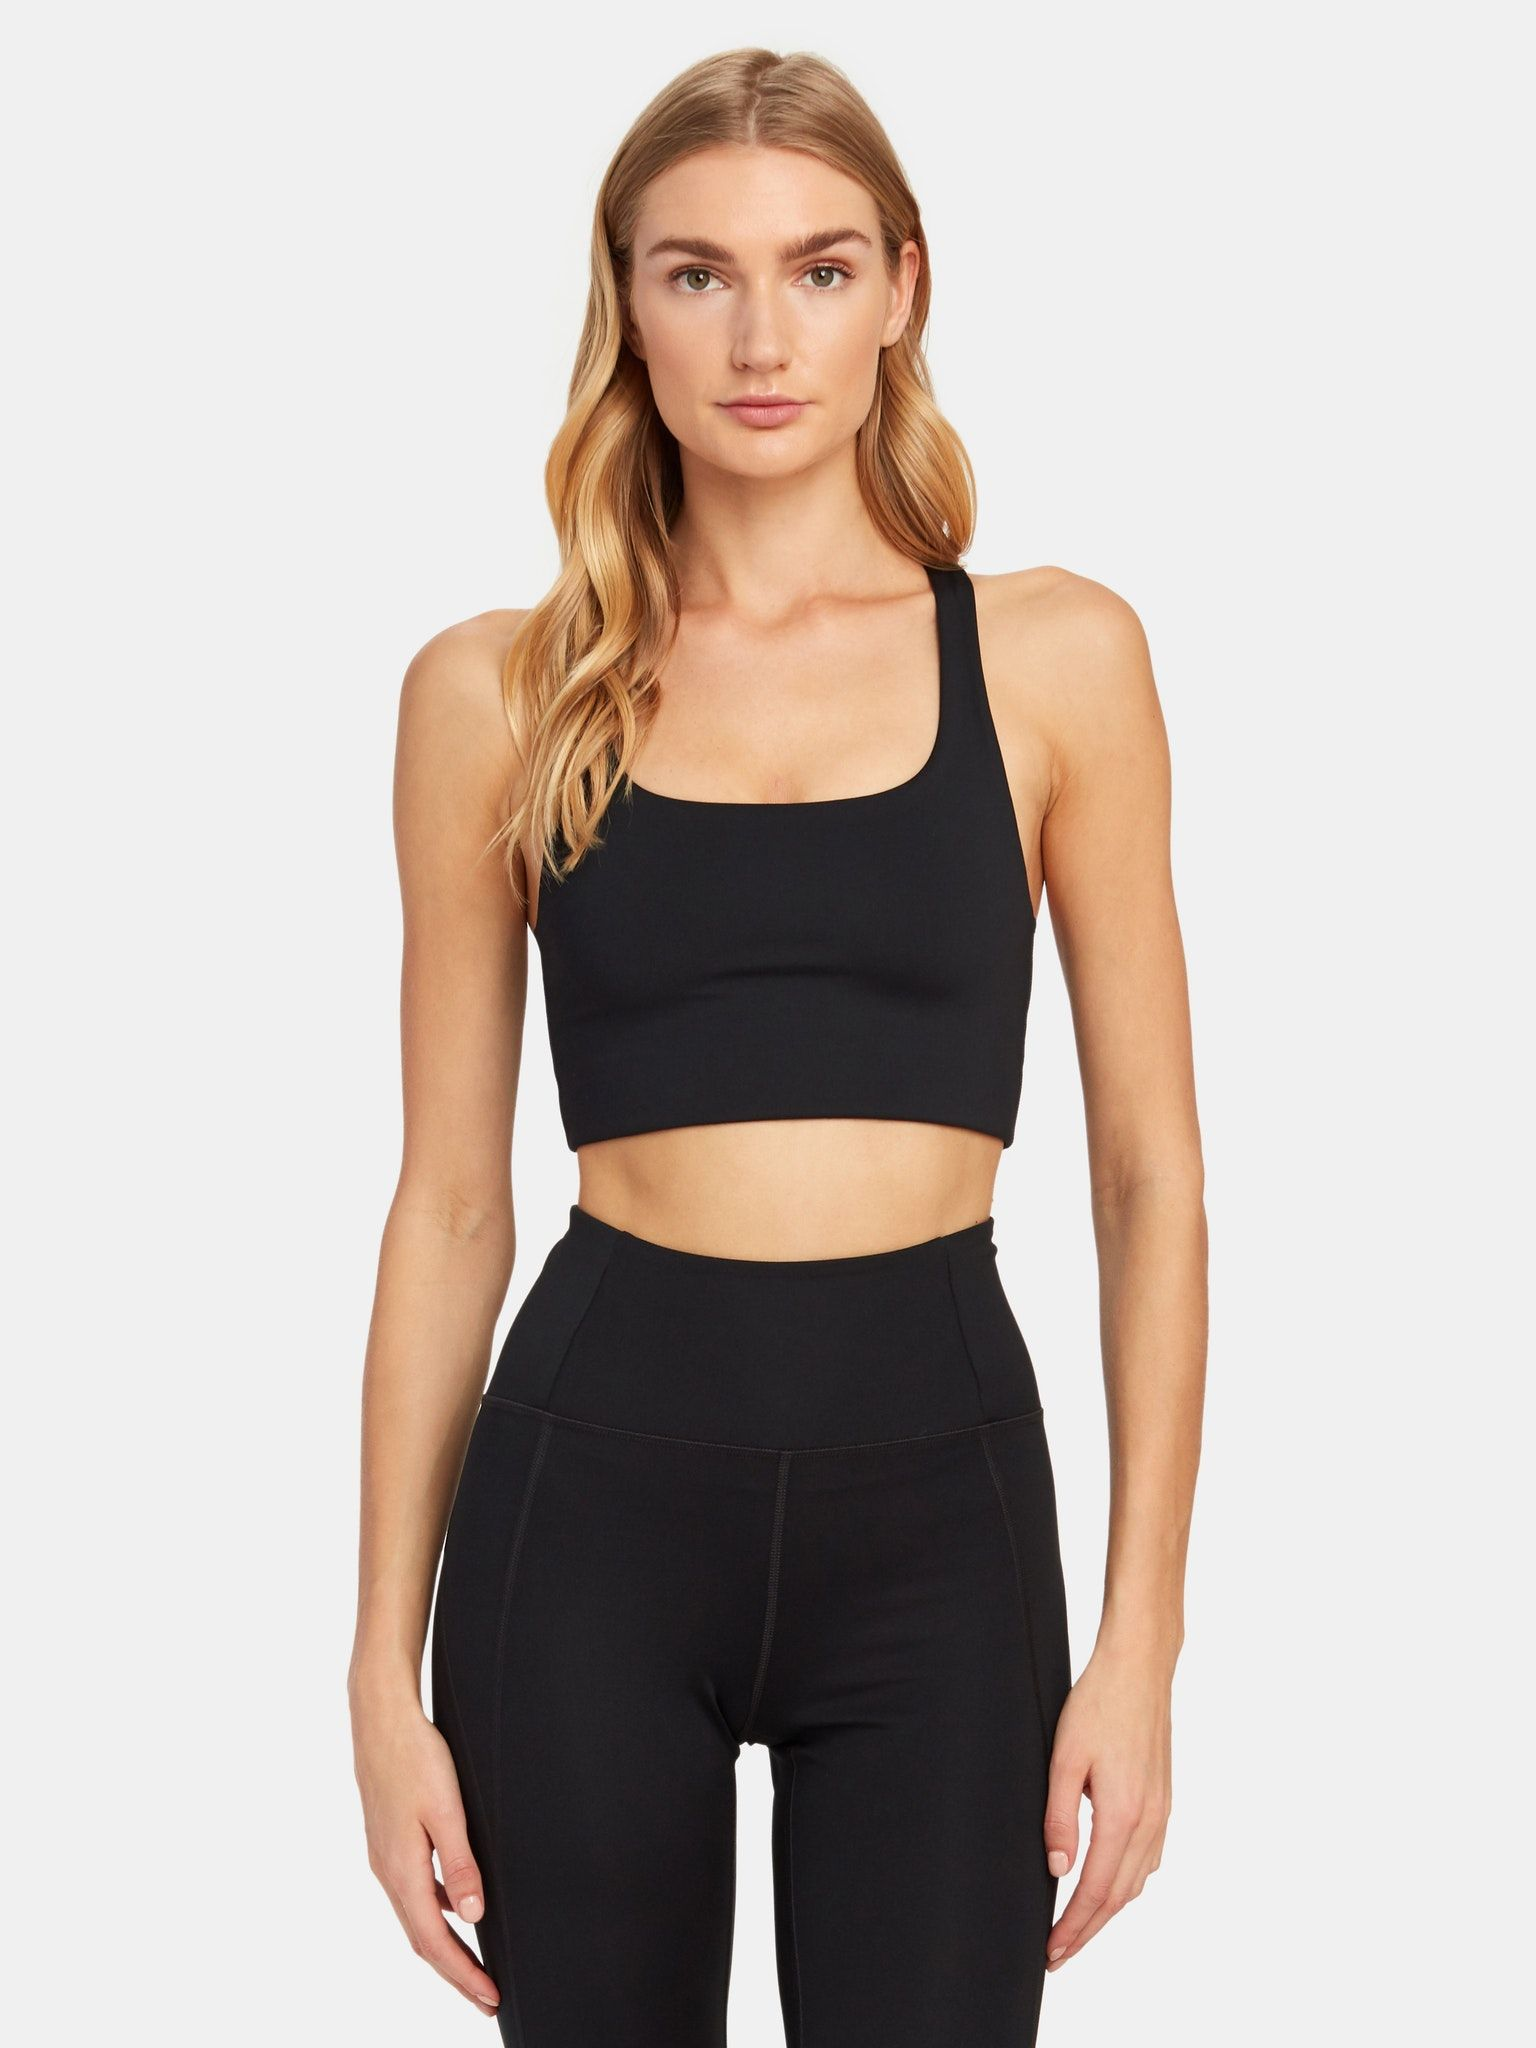 Girlfriend Collective Cropped Paloma Sports Bra in 2020